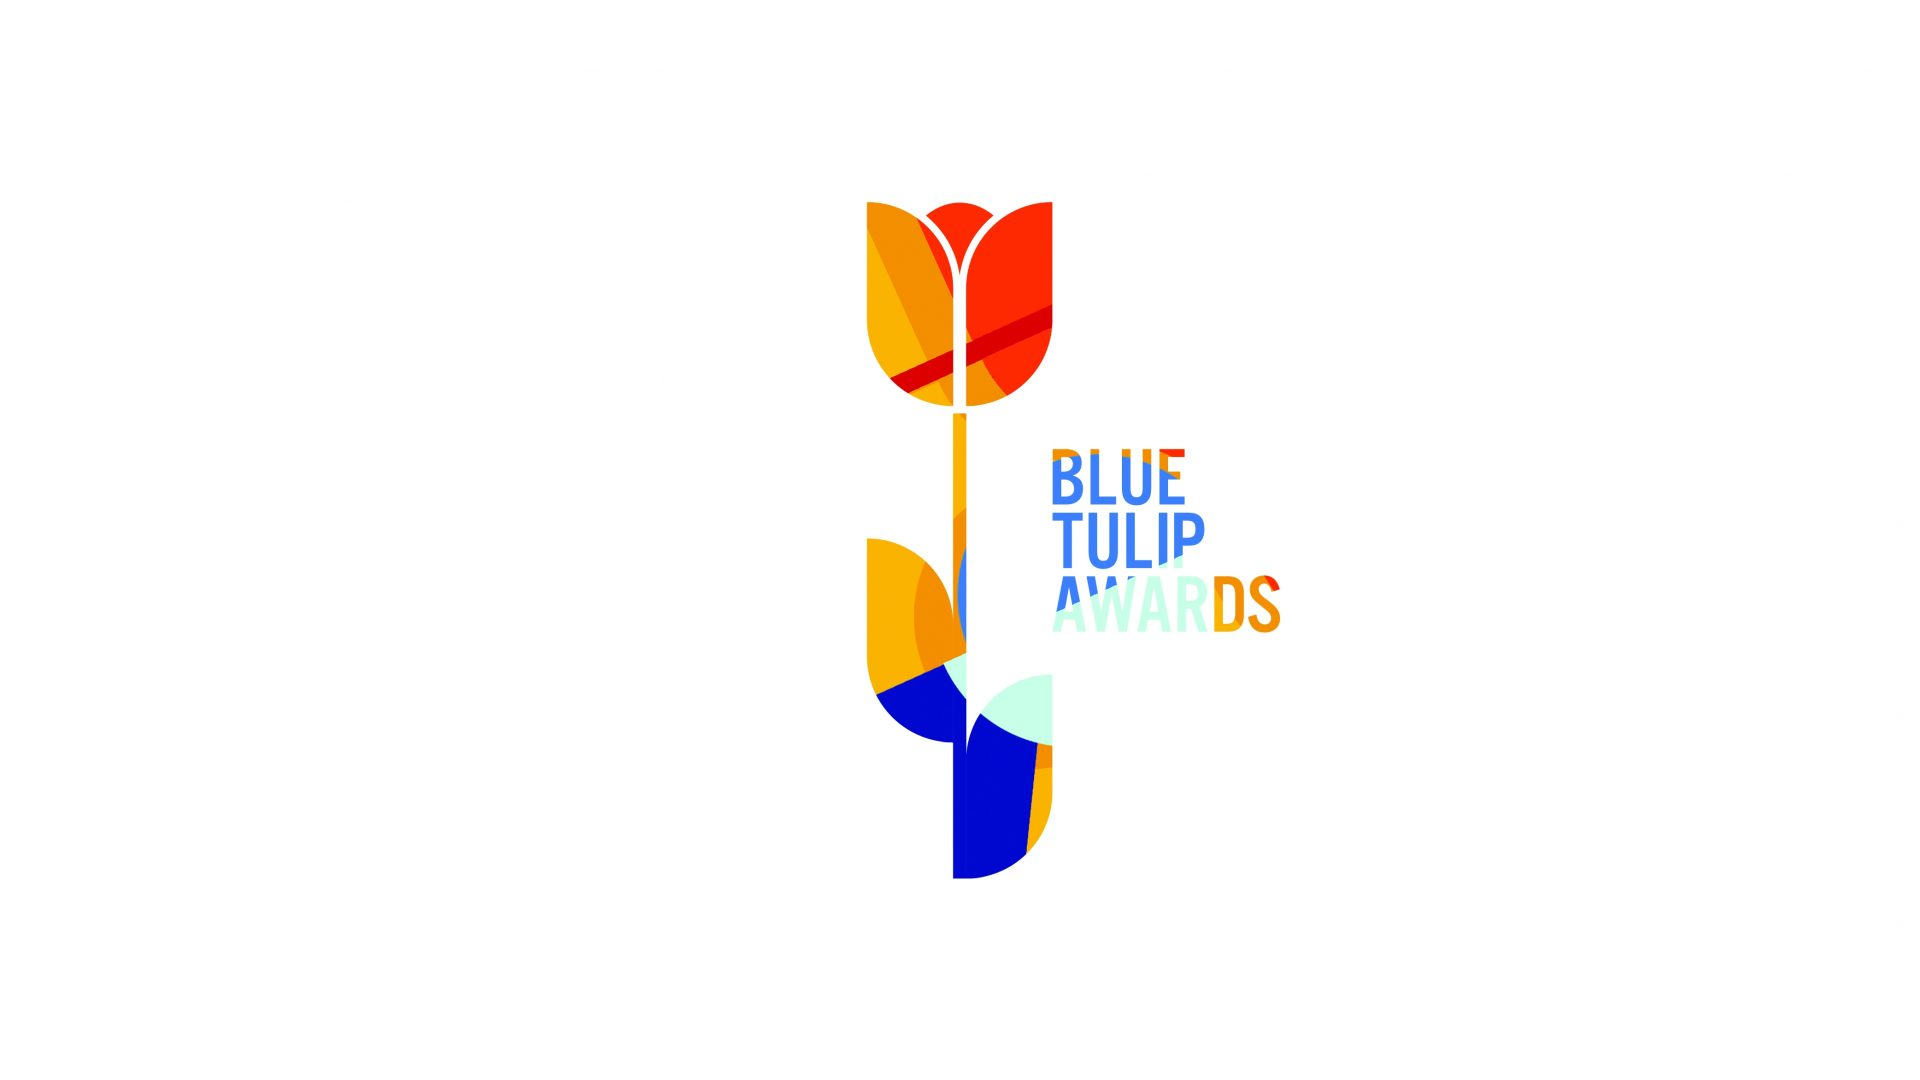 Bluetulipawards Pack Corelogos 1